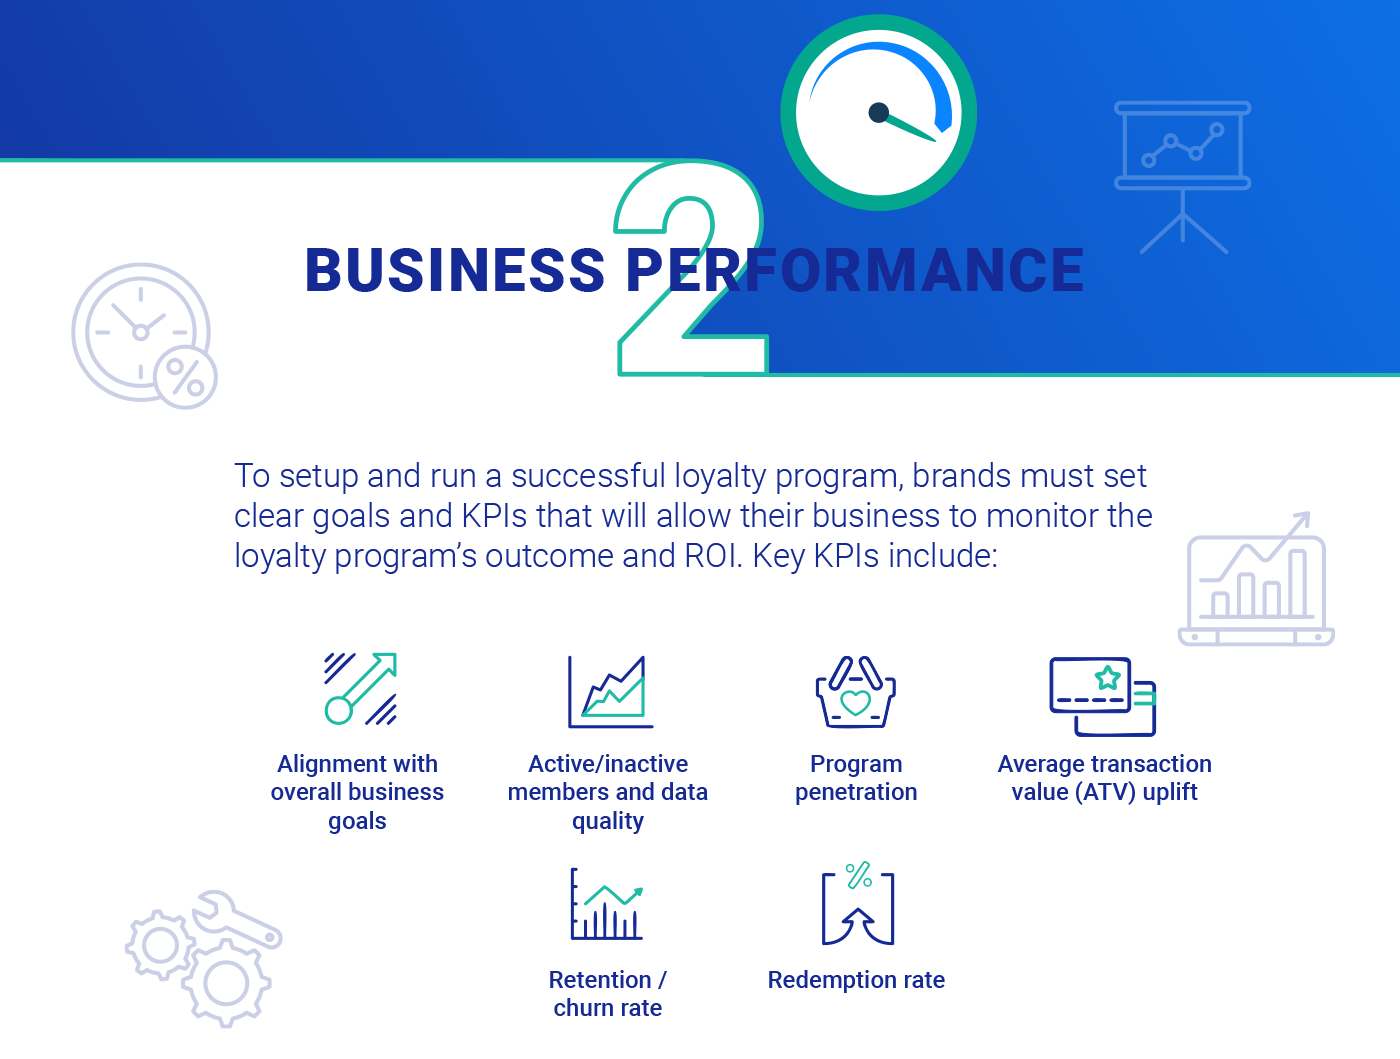 business performance infographic